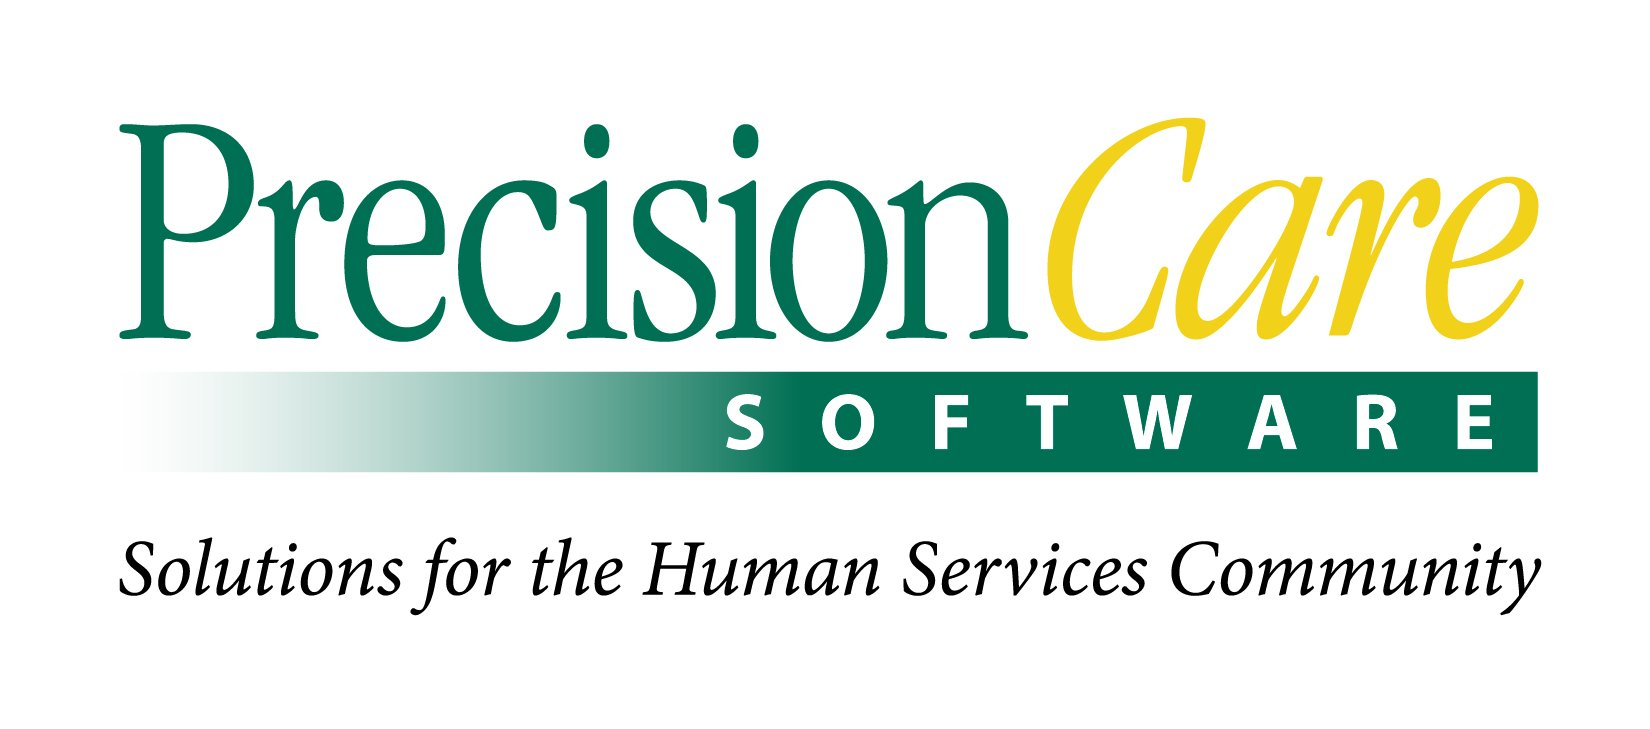 PrecisionCare Software Solutions for the Human Services Community